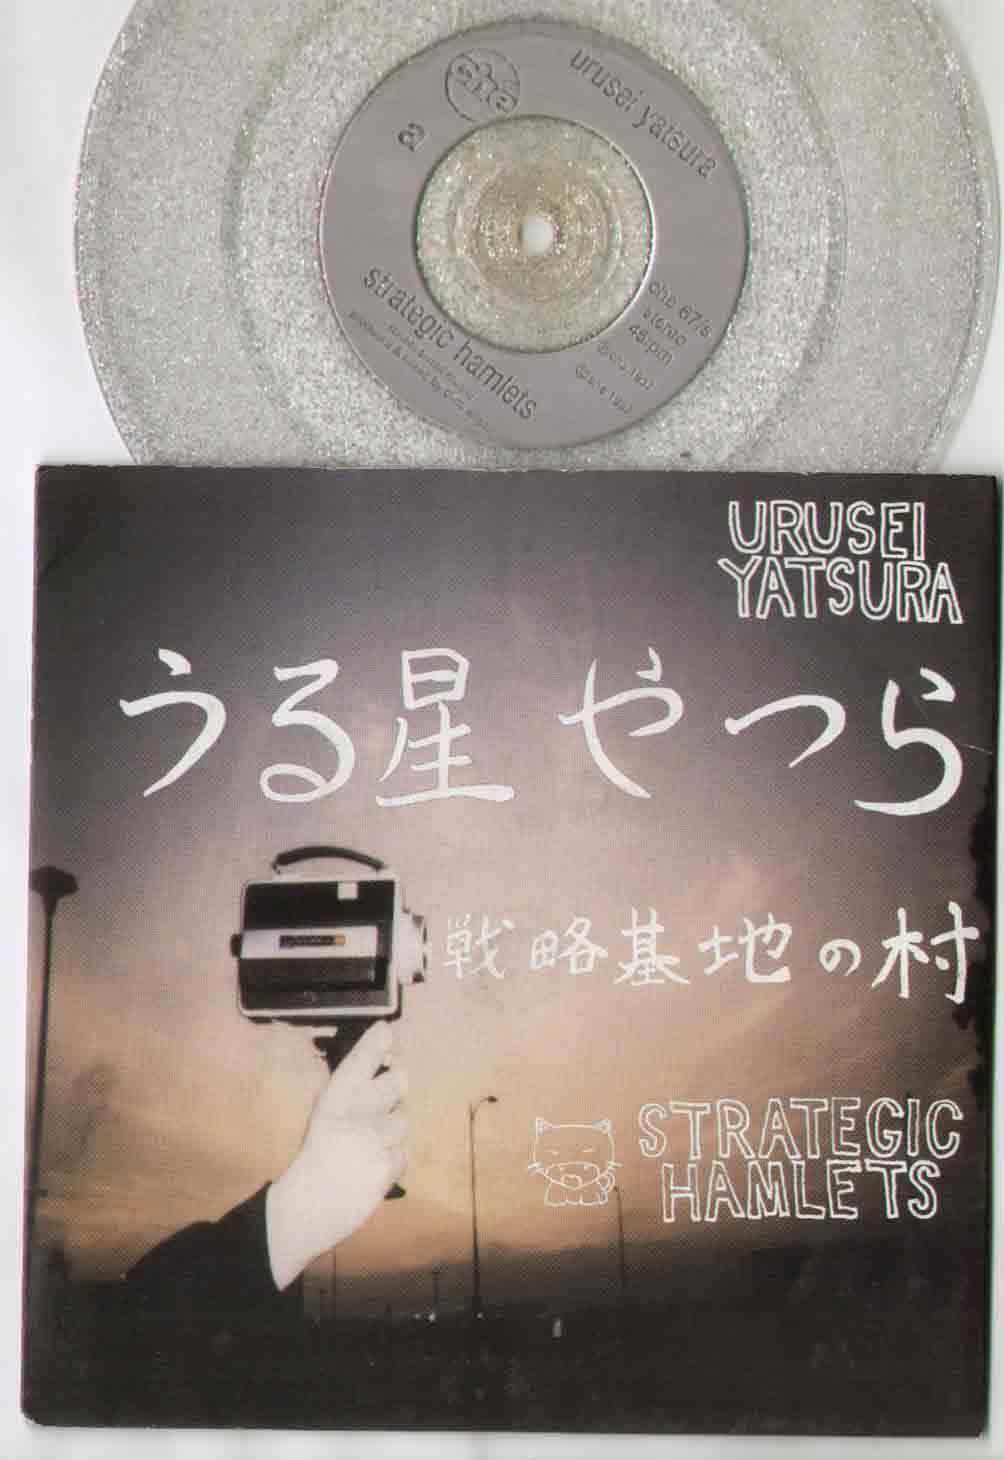 Urusei Yatsura Strategic+Hamlets 7''